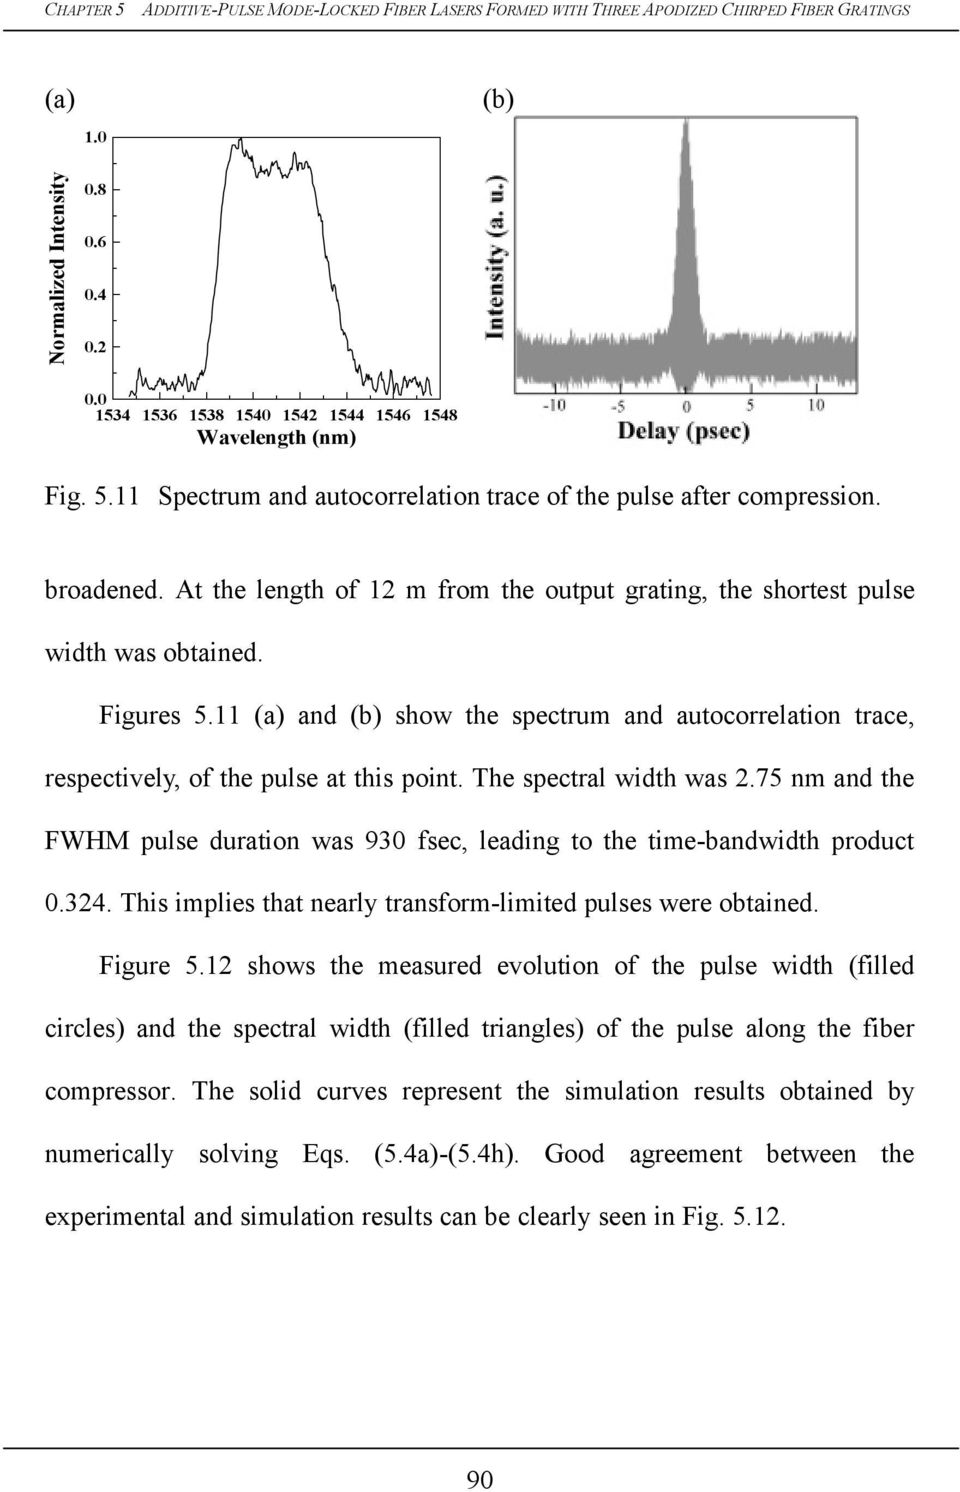 The spectral width was.75 nm and the FWHM pulse duration was 93 fsec, leading to the time-bandwidth product.34. This implies that nearly transform-limited pulses were obtained. Figure 5.